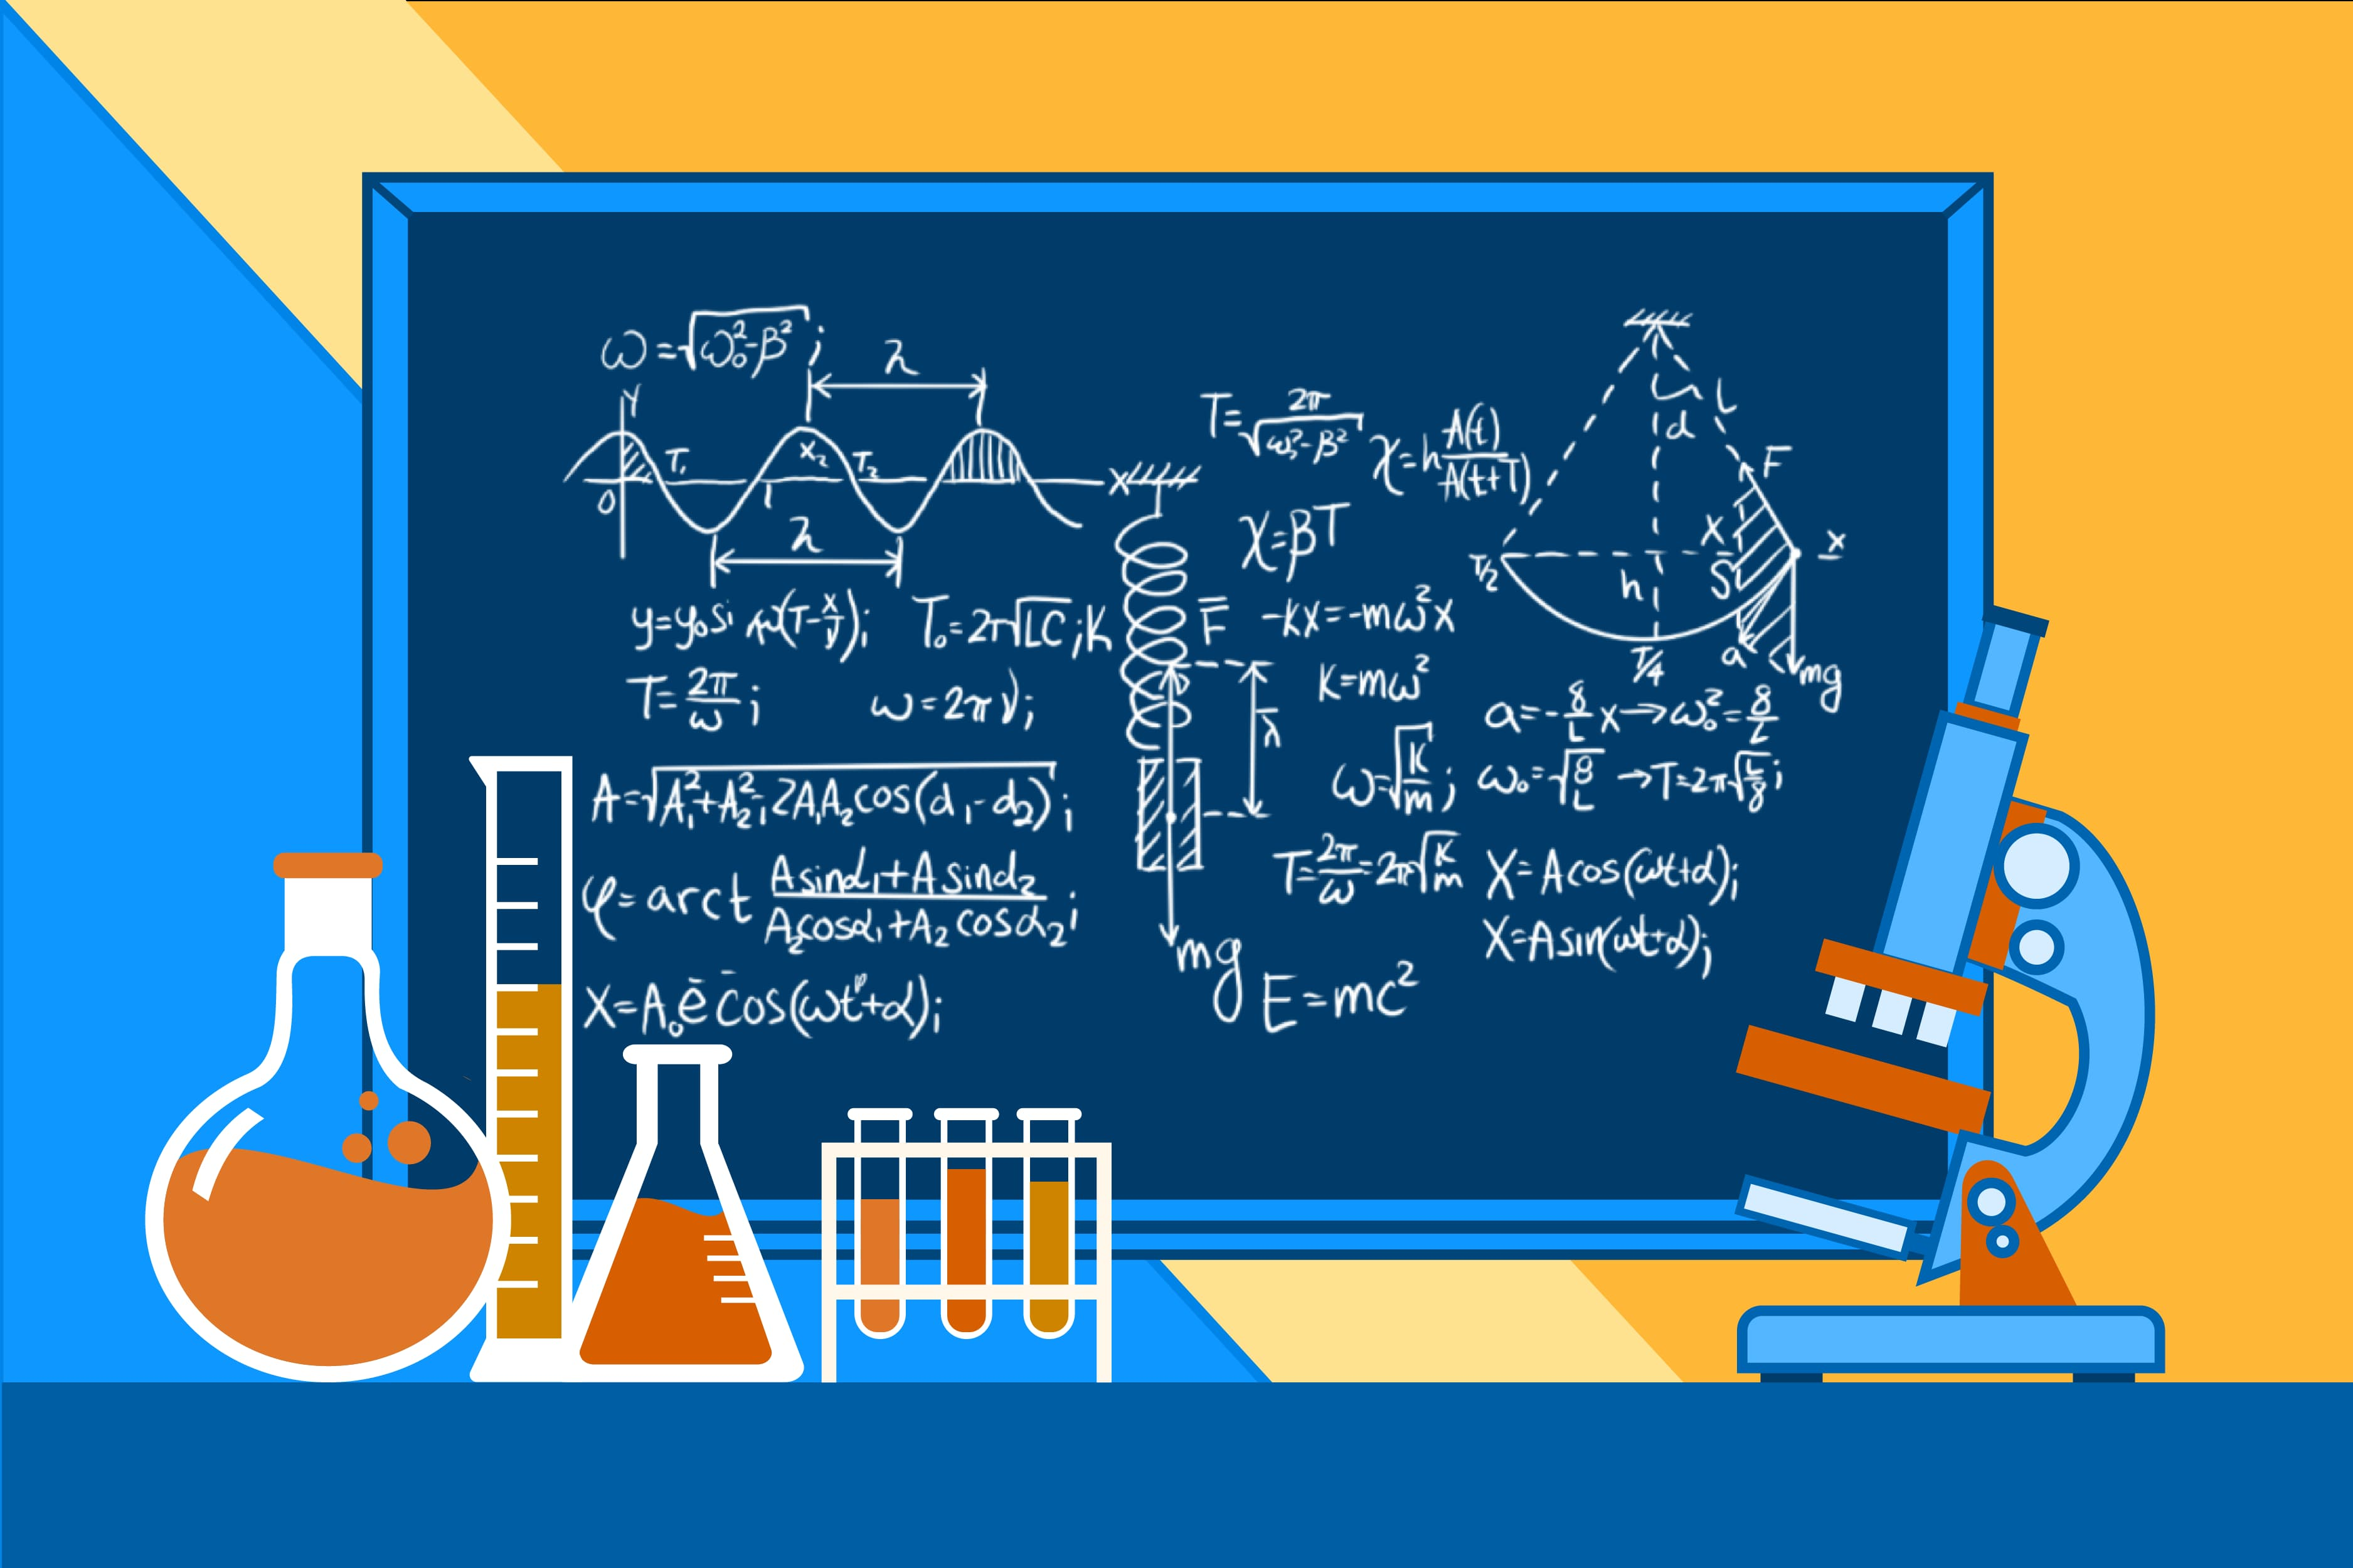 supplemental instruction illustration with physics equations on a blackboard